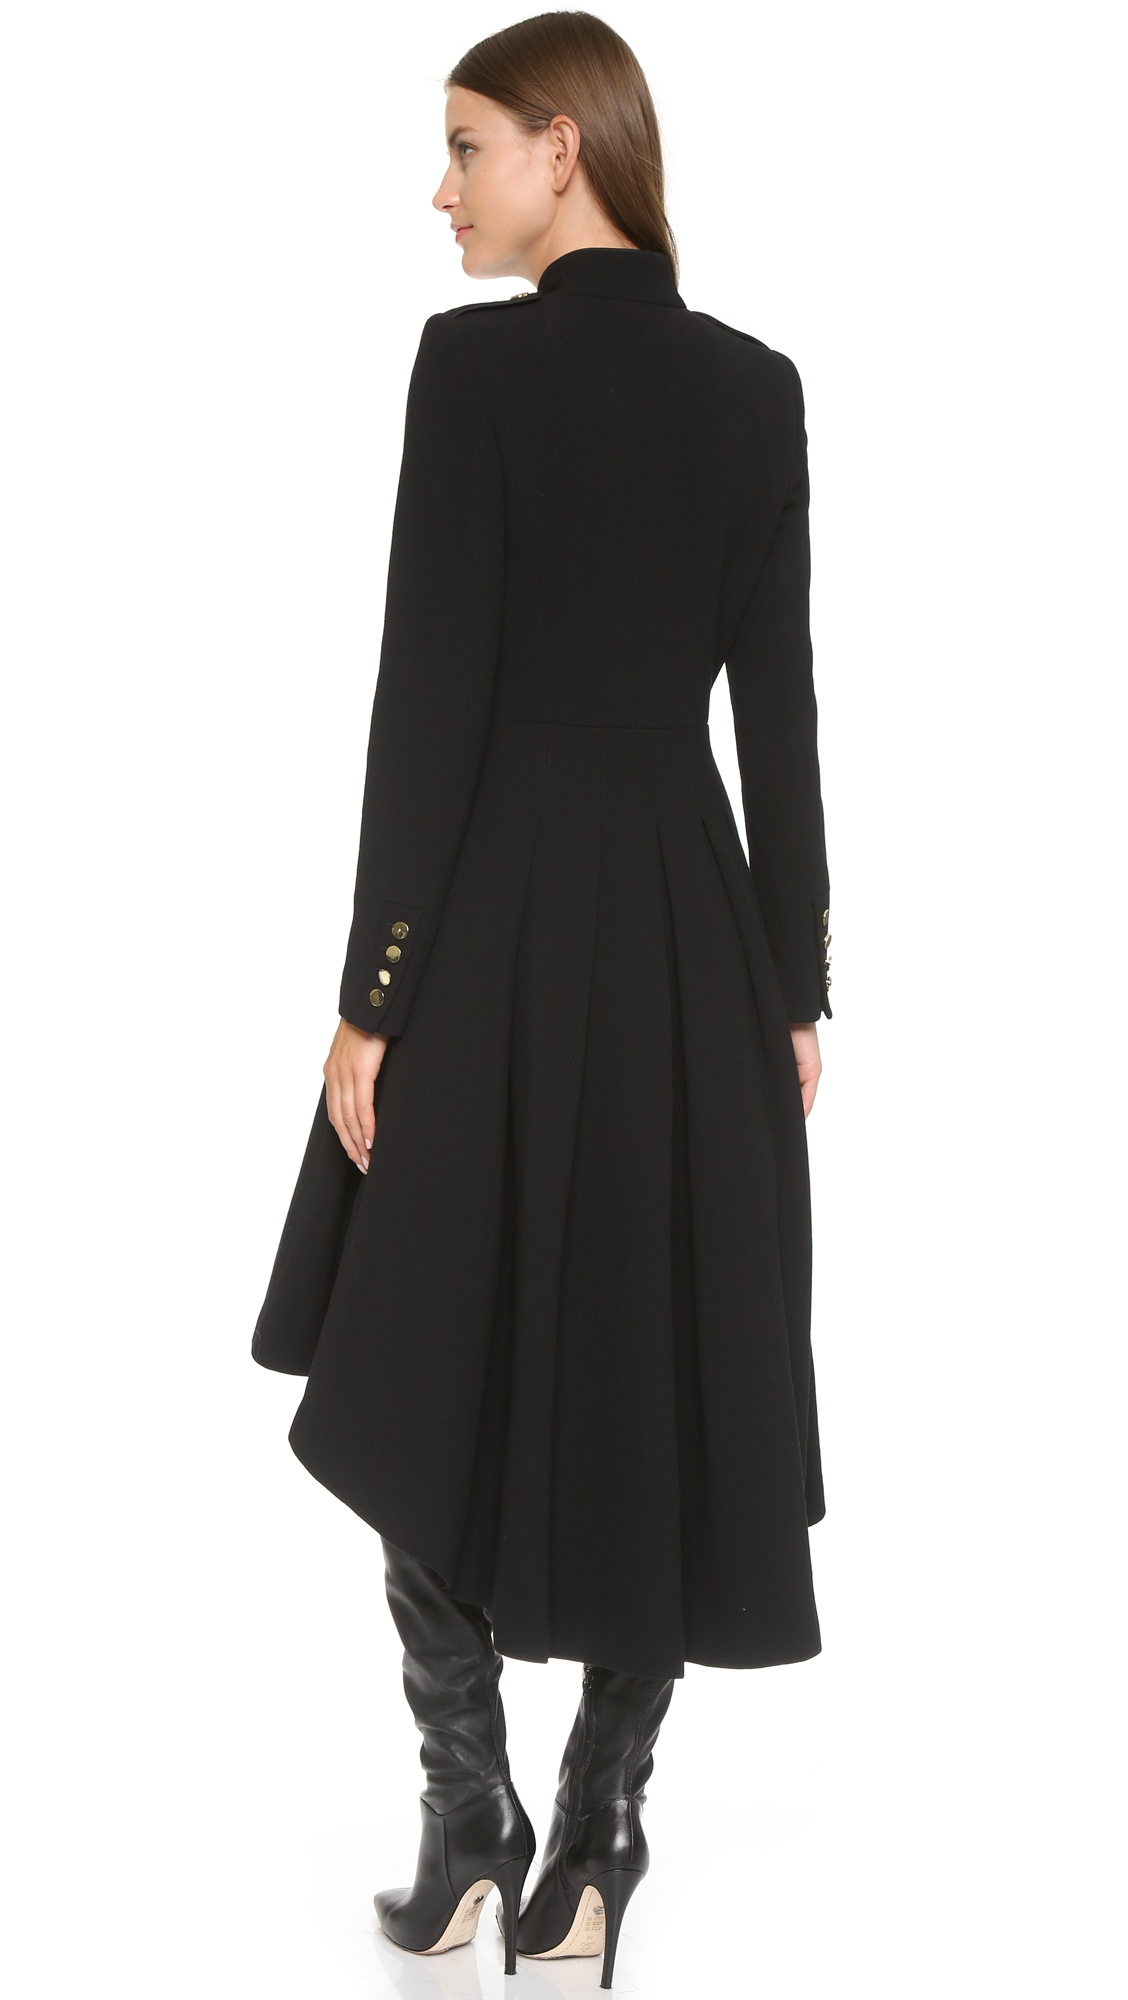 Alice   olivia Rossi Long Military Coat - Black in Black | Lyst